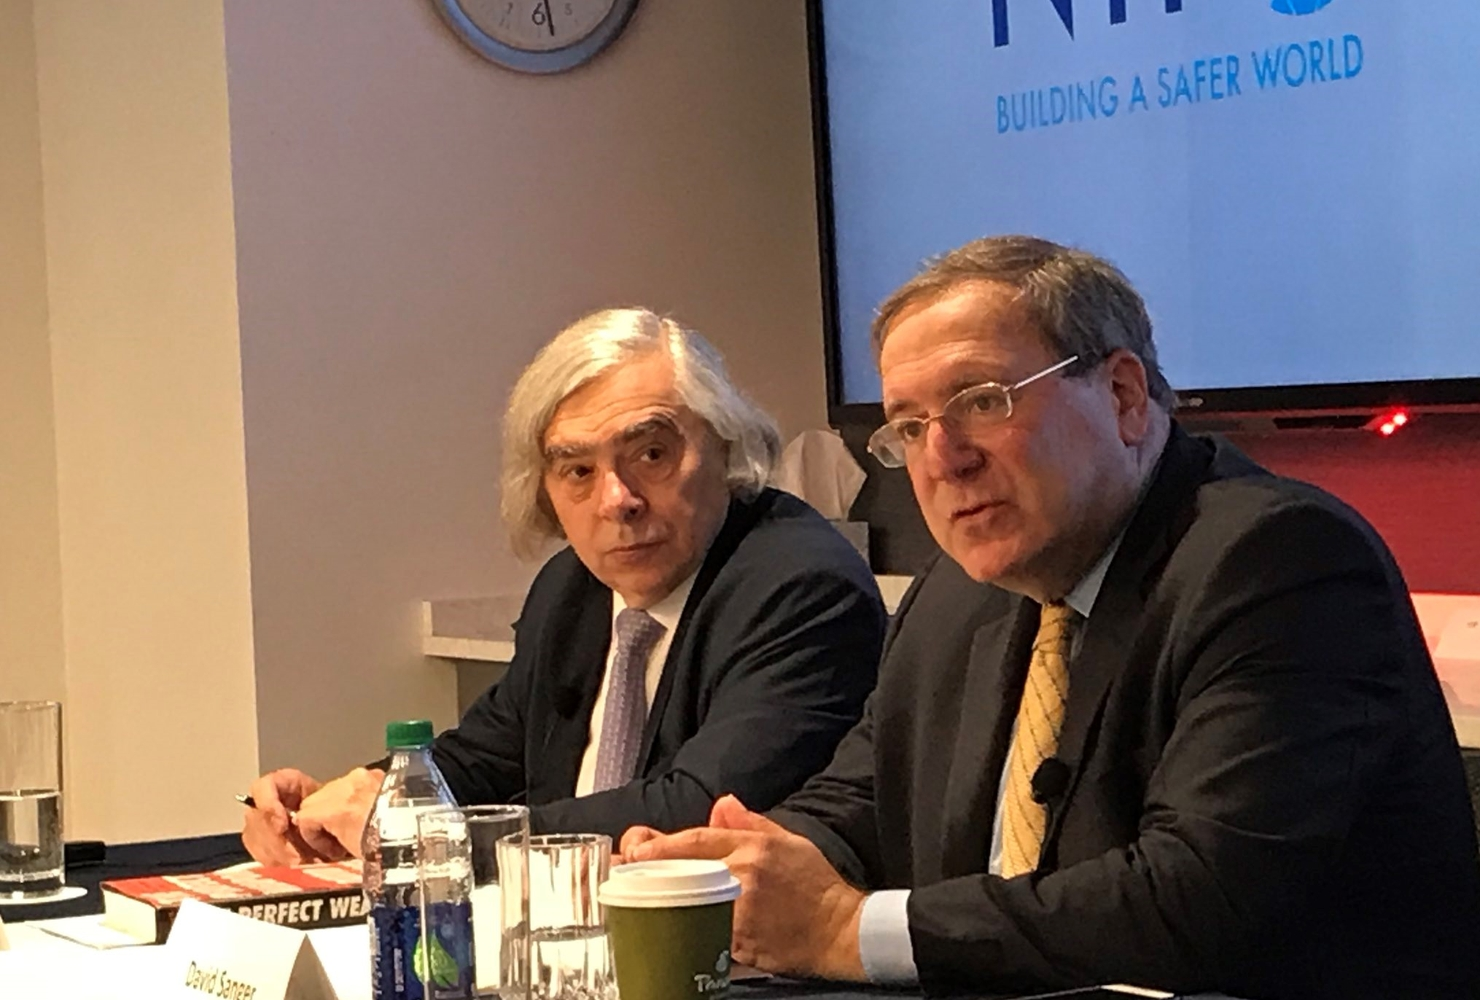 David Sanger and Ernest Moniz